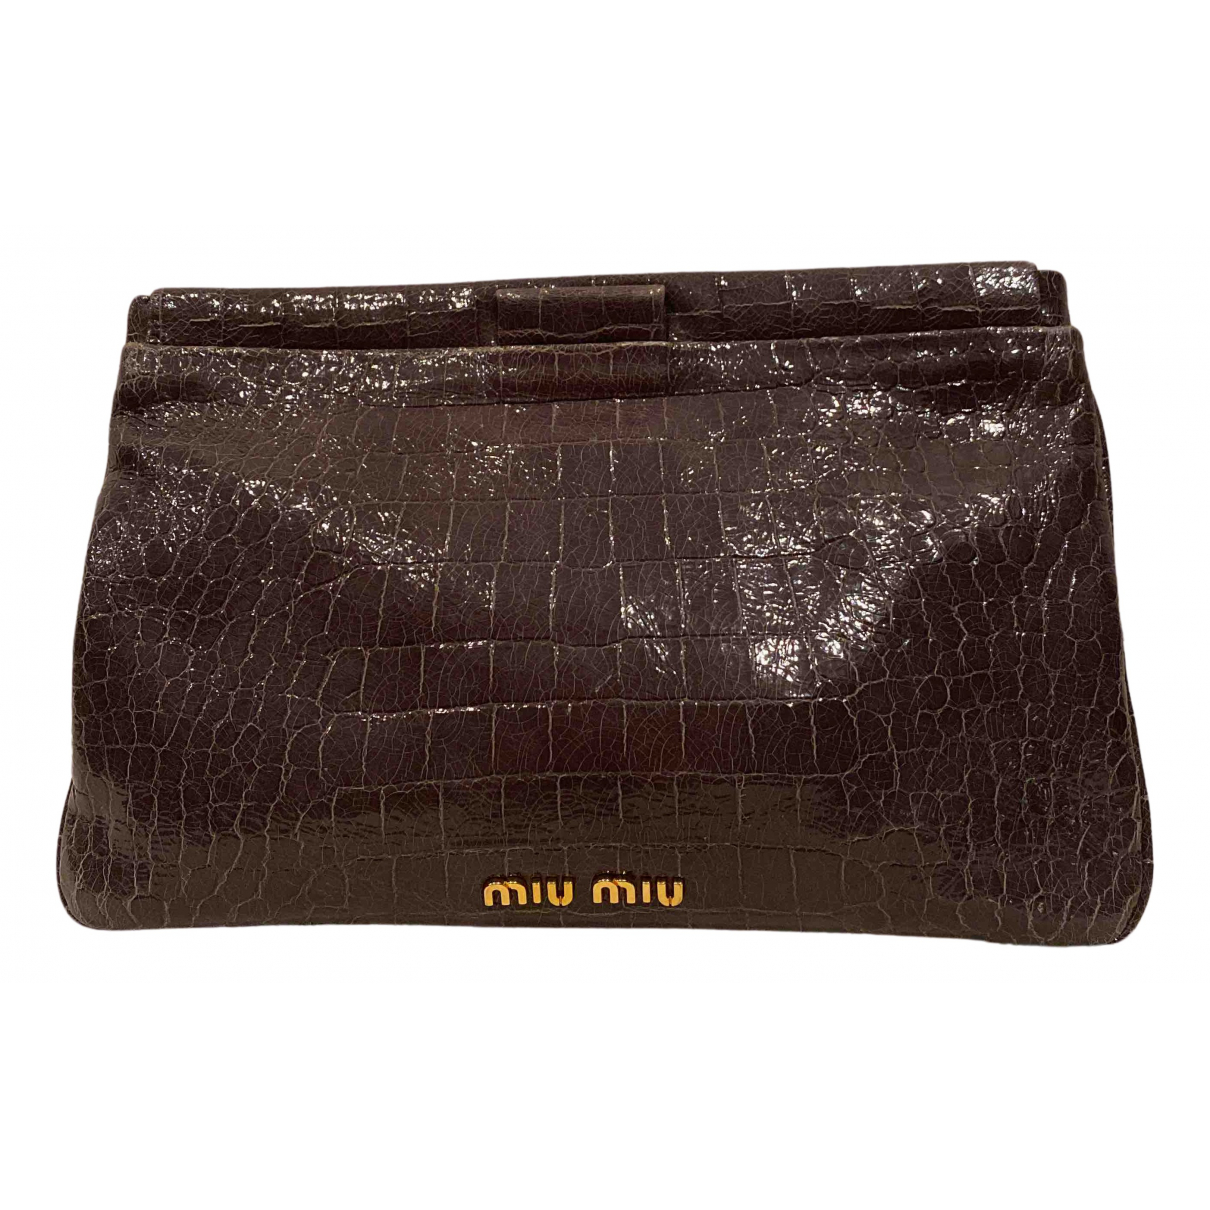 Miu Miu N Grey Patent leather Clutch bag for Women N